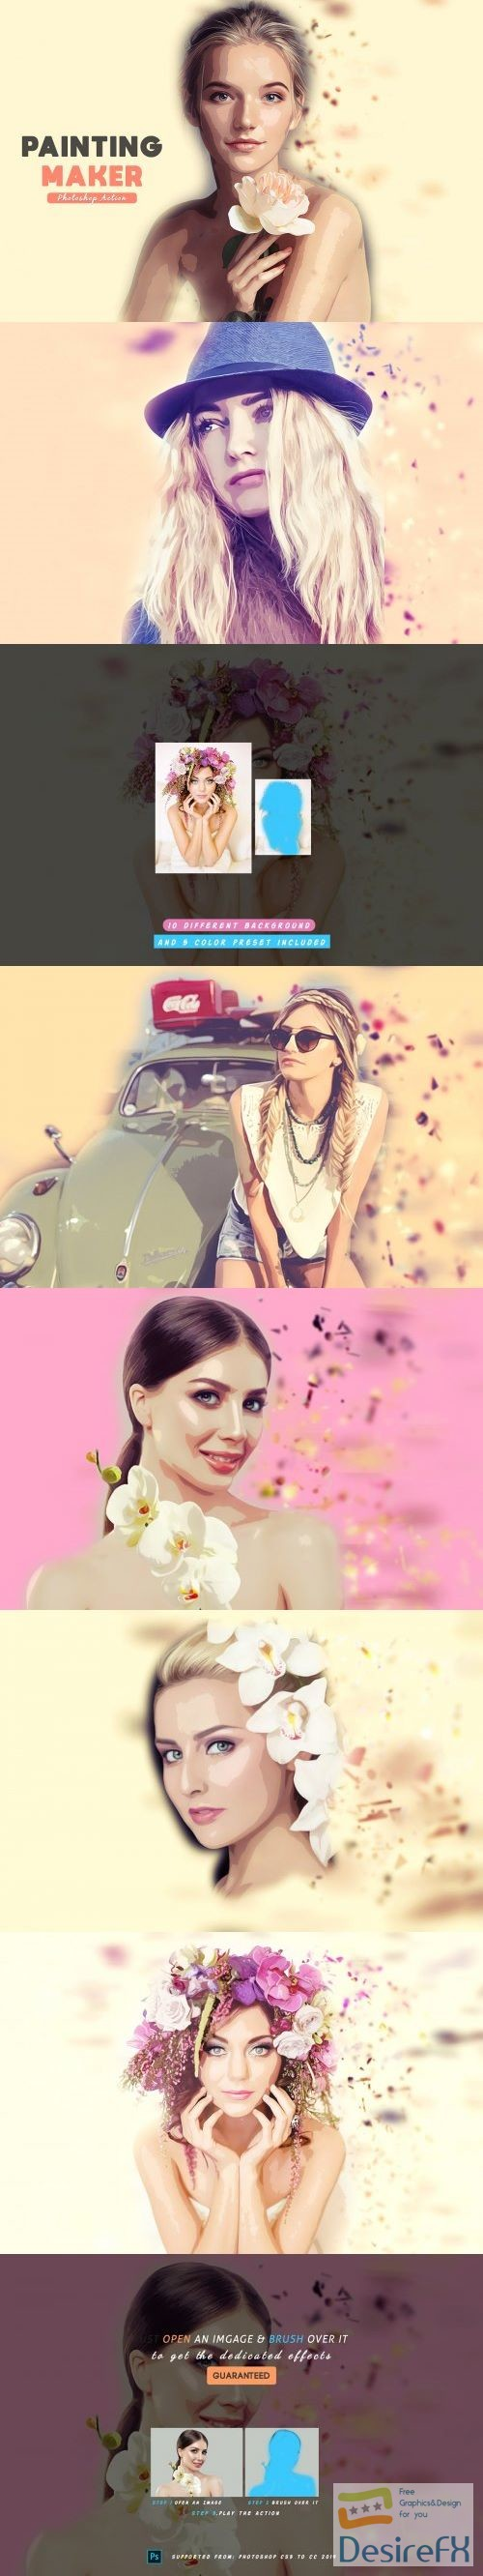 Painting Maker Photoshop Action 3999758